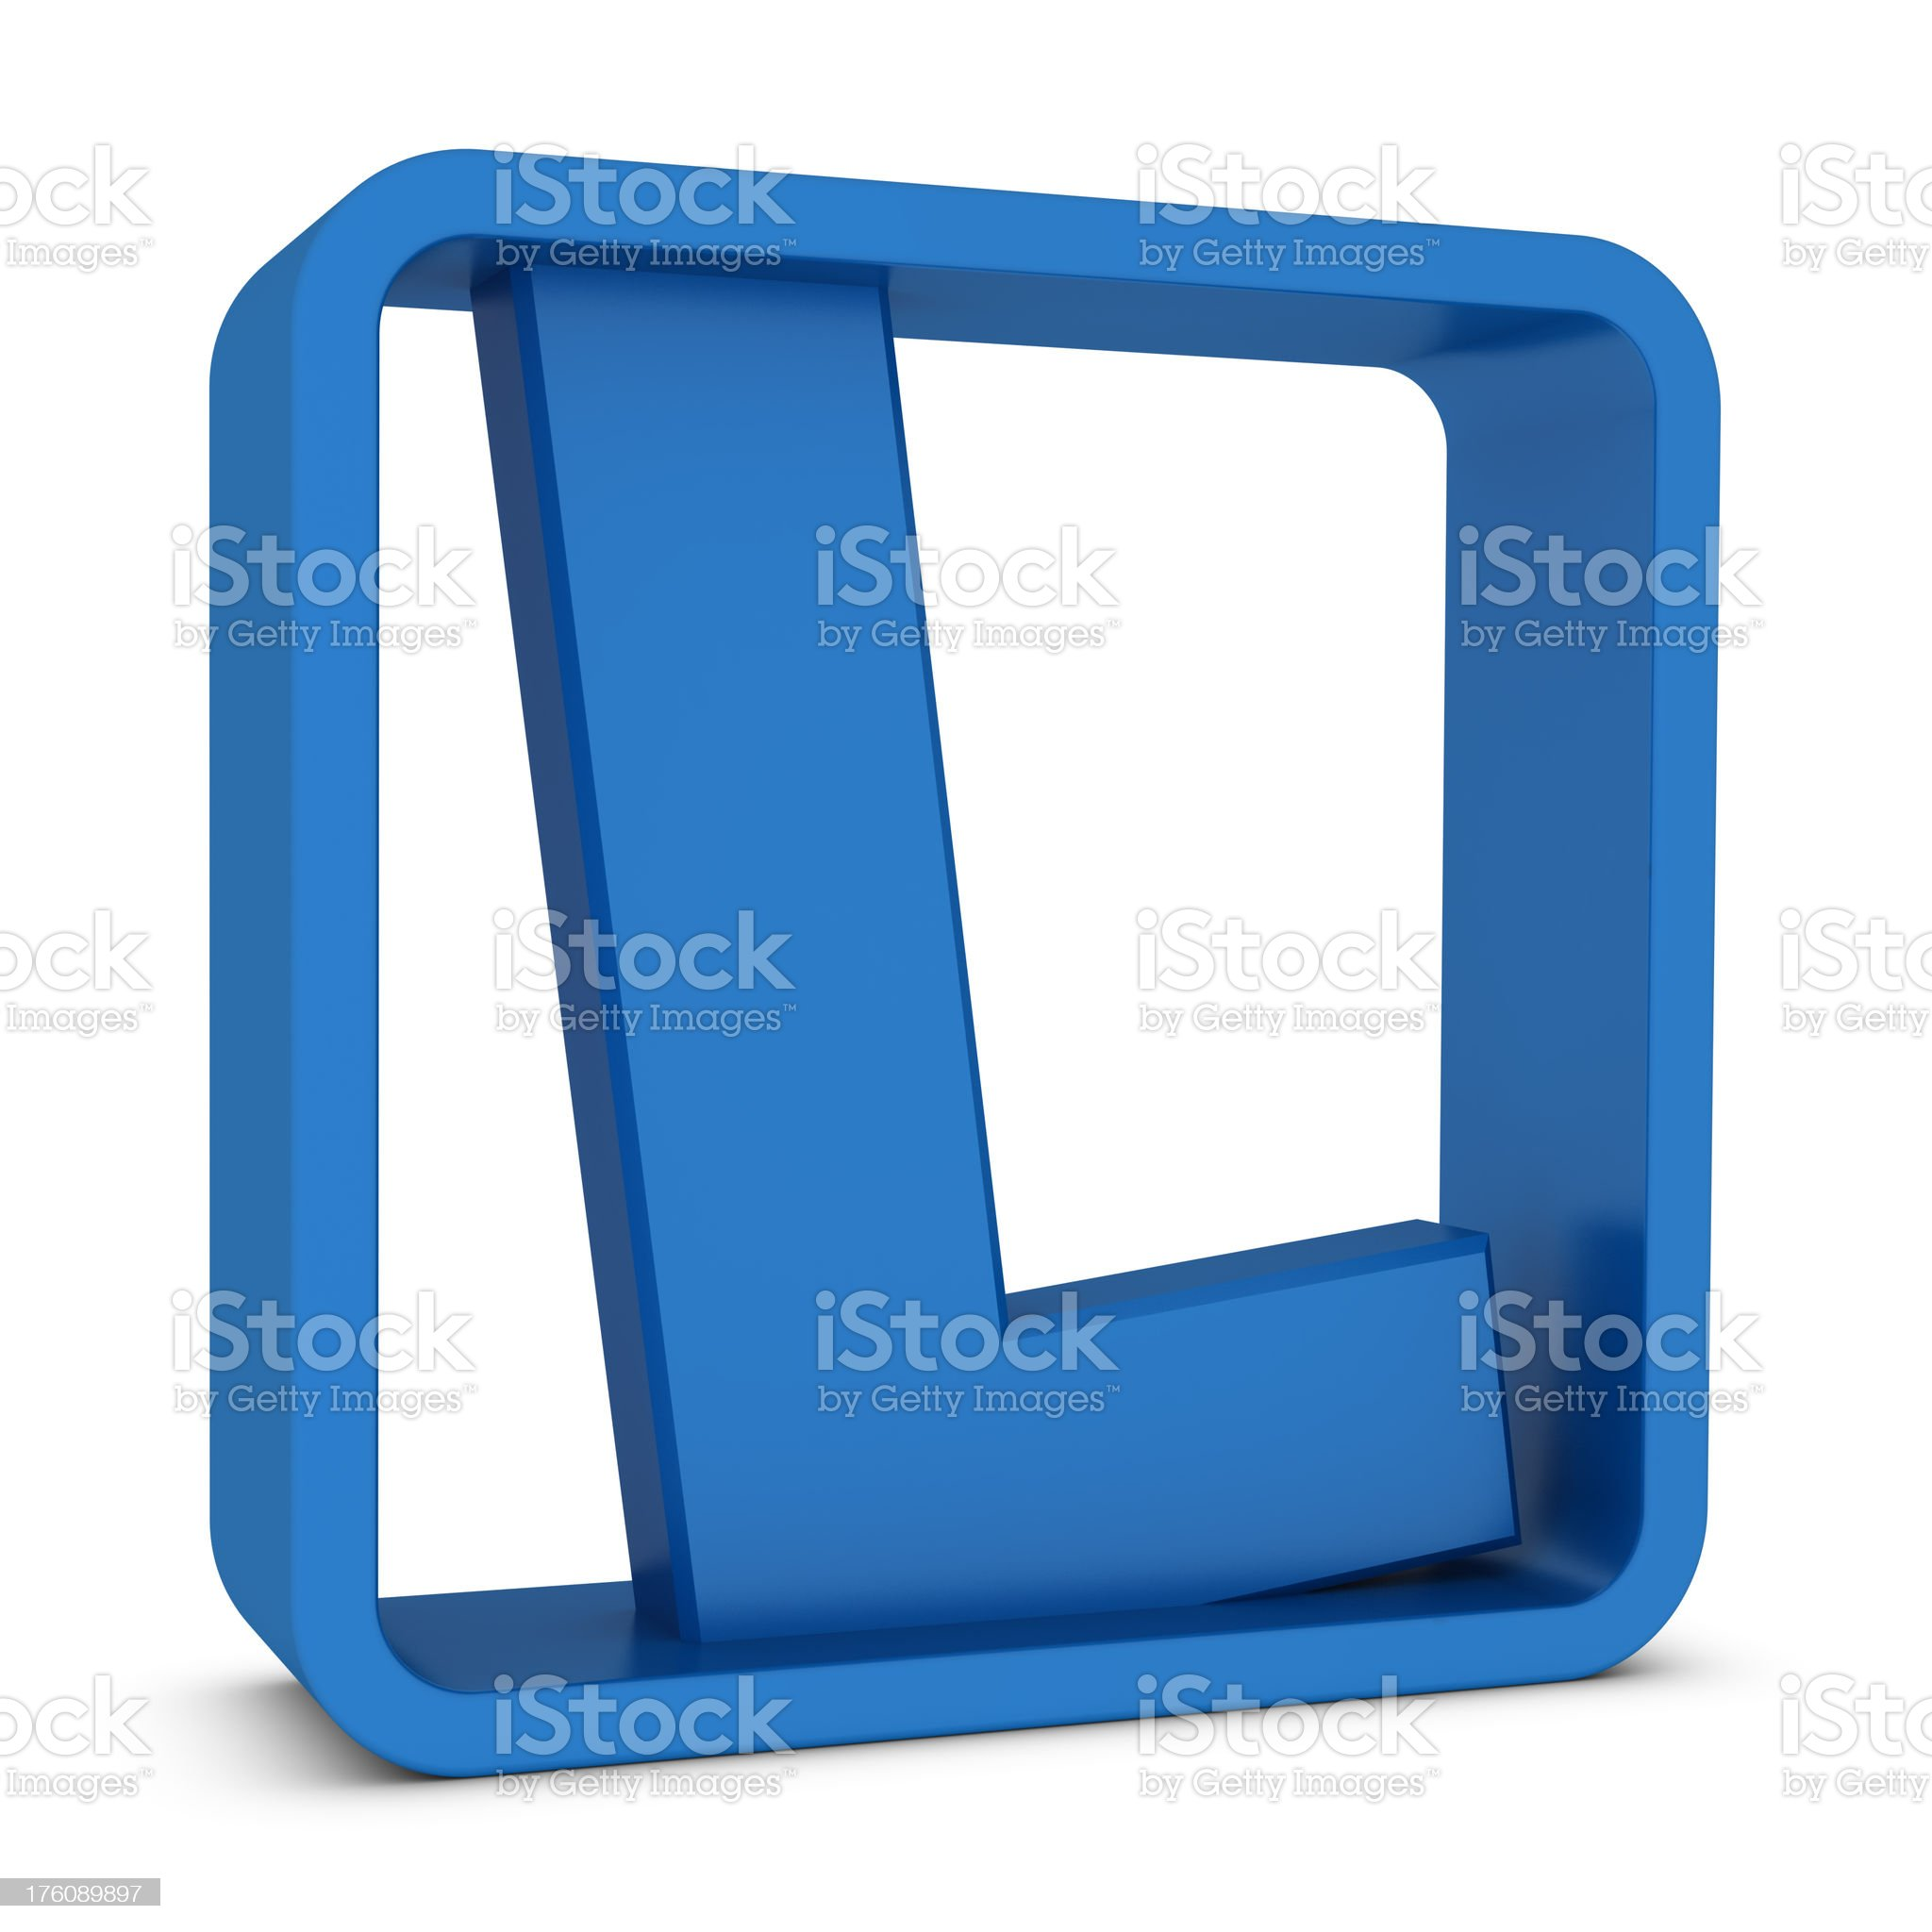 Letter L royalty-free stock photo